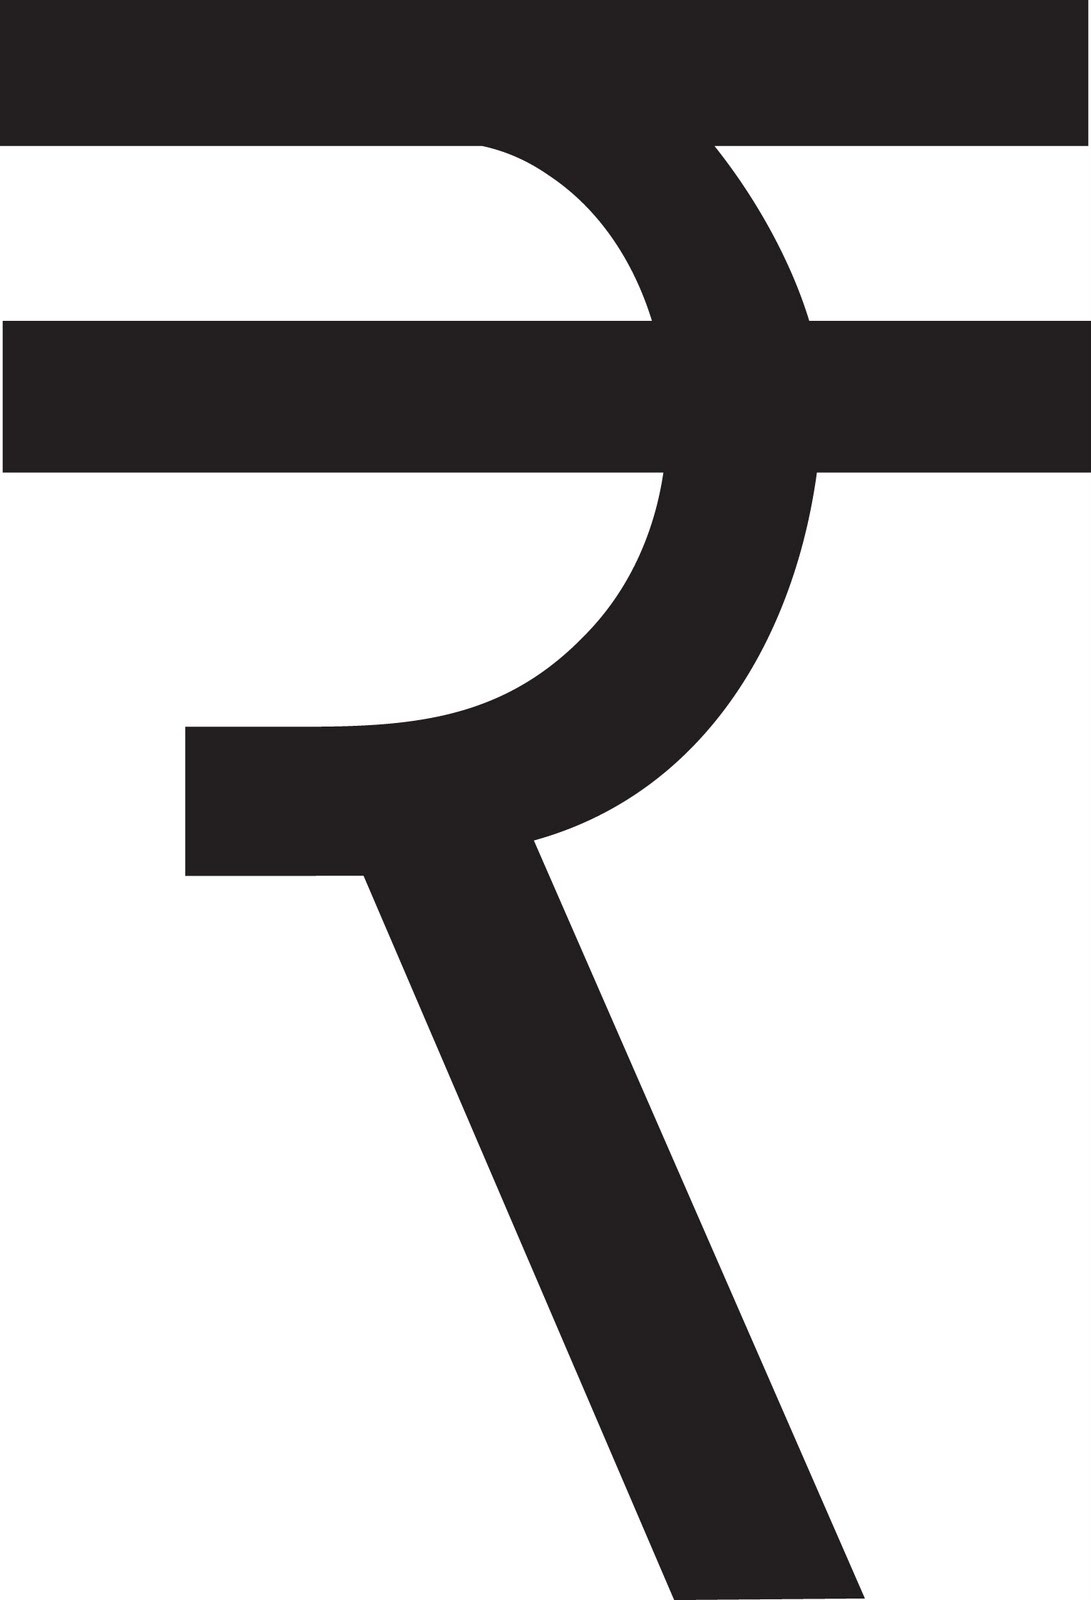 Indian Rupee Currency Symbol - Use keyboard shortcut